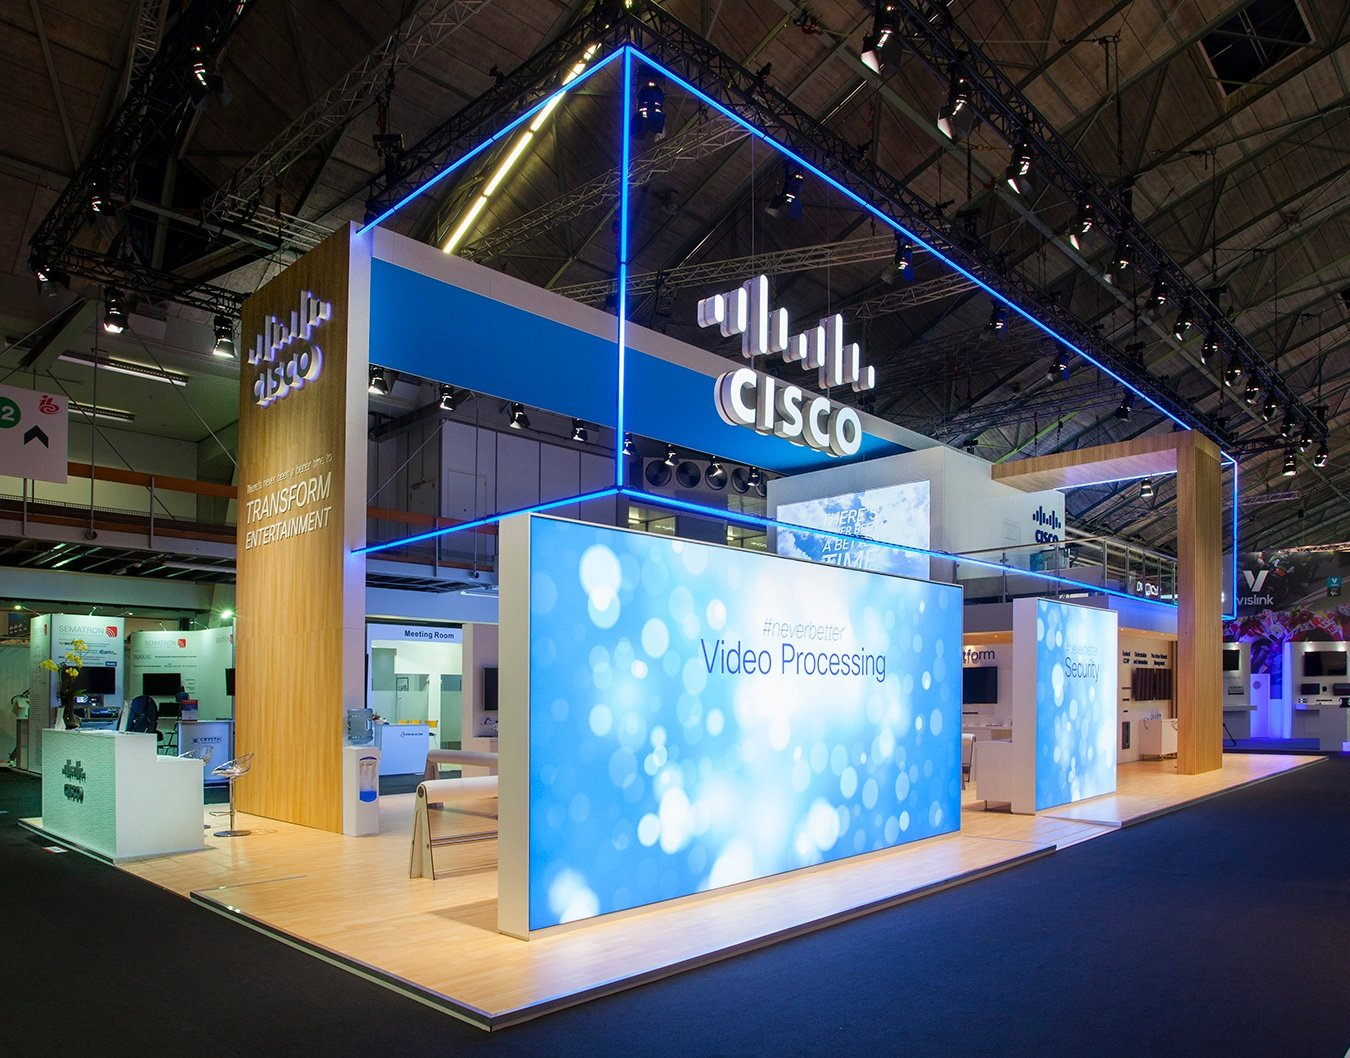 Cisco: International Trade Show Exhibit Design